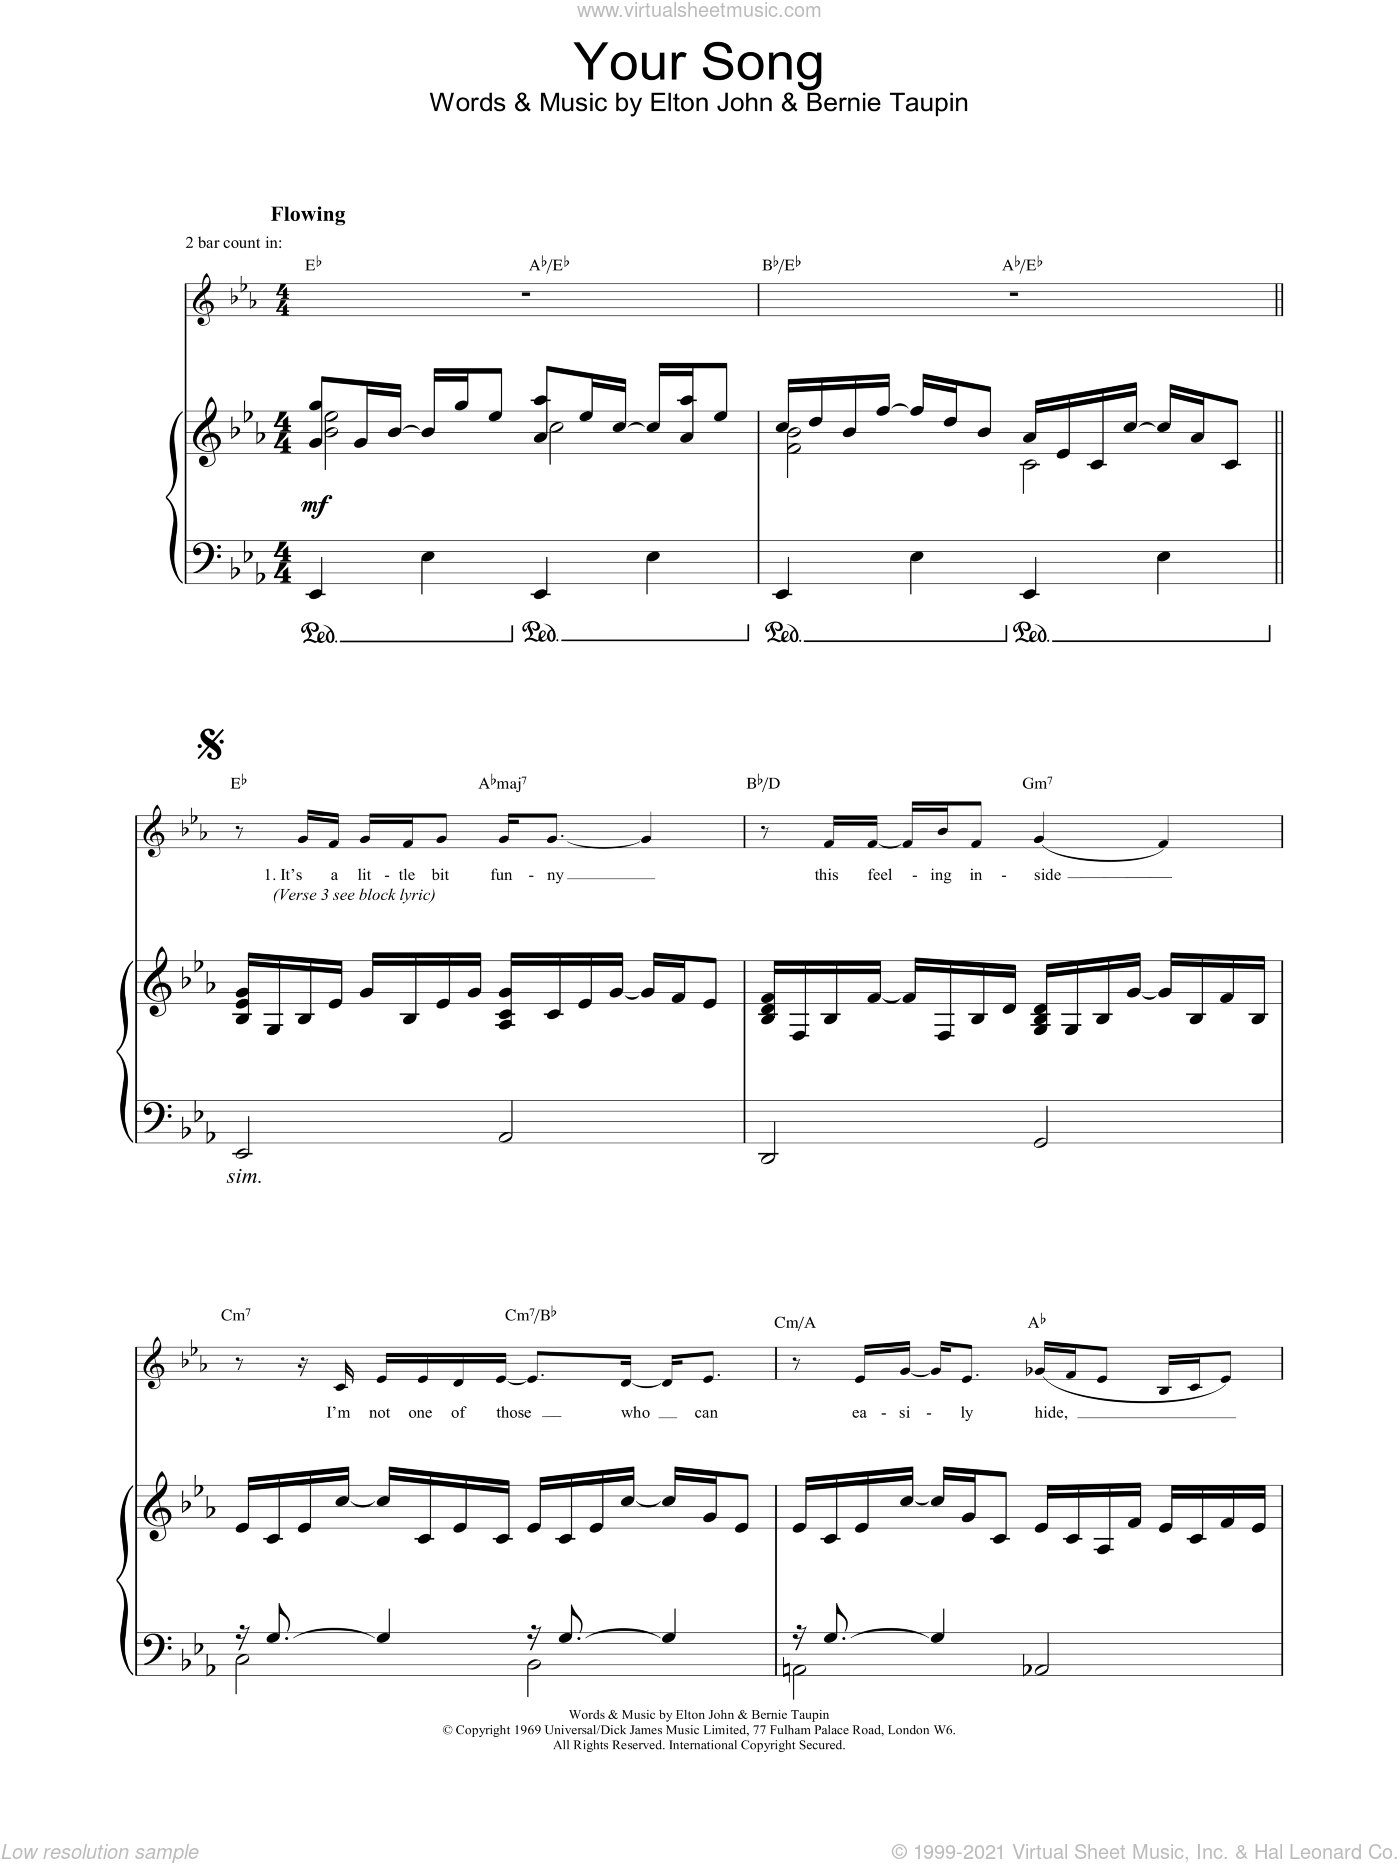 Your Song sheet music for voice, piano or guitar by Ewan McGregor, Bernie Taupin and Elton John, intermediate skill level